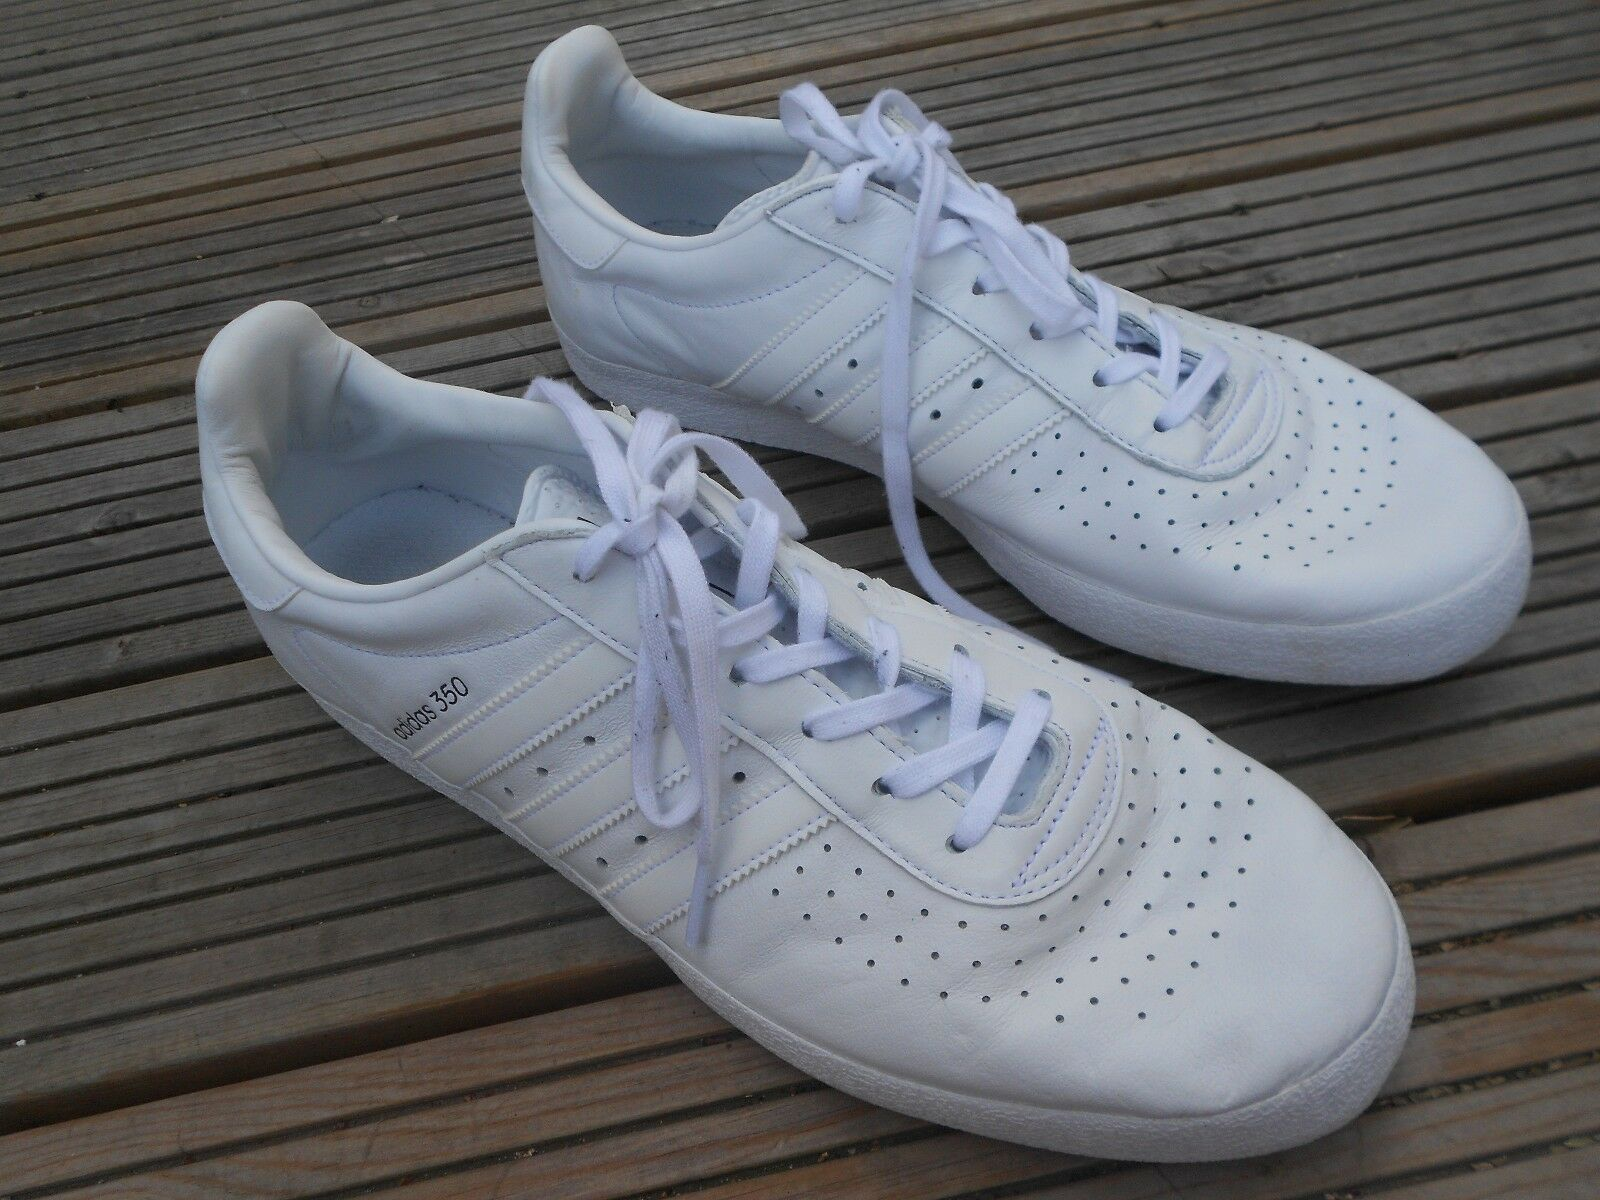 ADIDAS ORIGINALS 350 FTWR TRAINERS - UK  SZ 11 - IN GOOD CONDITION  fashionable